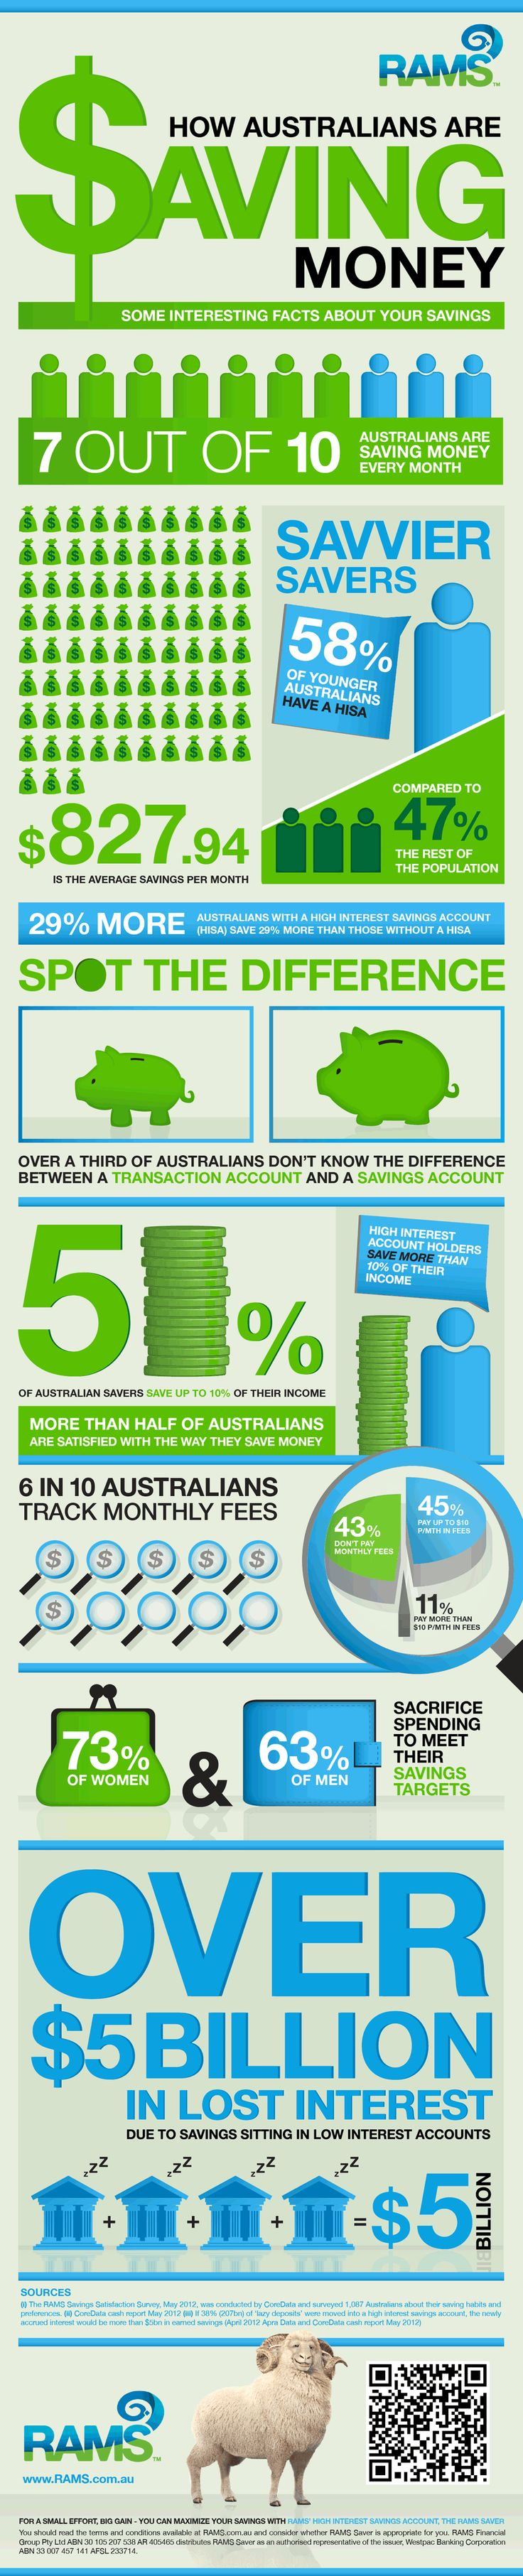 Some Interesting Facts About How Australians Save Their Money